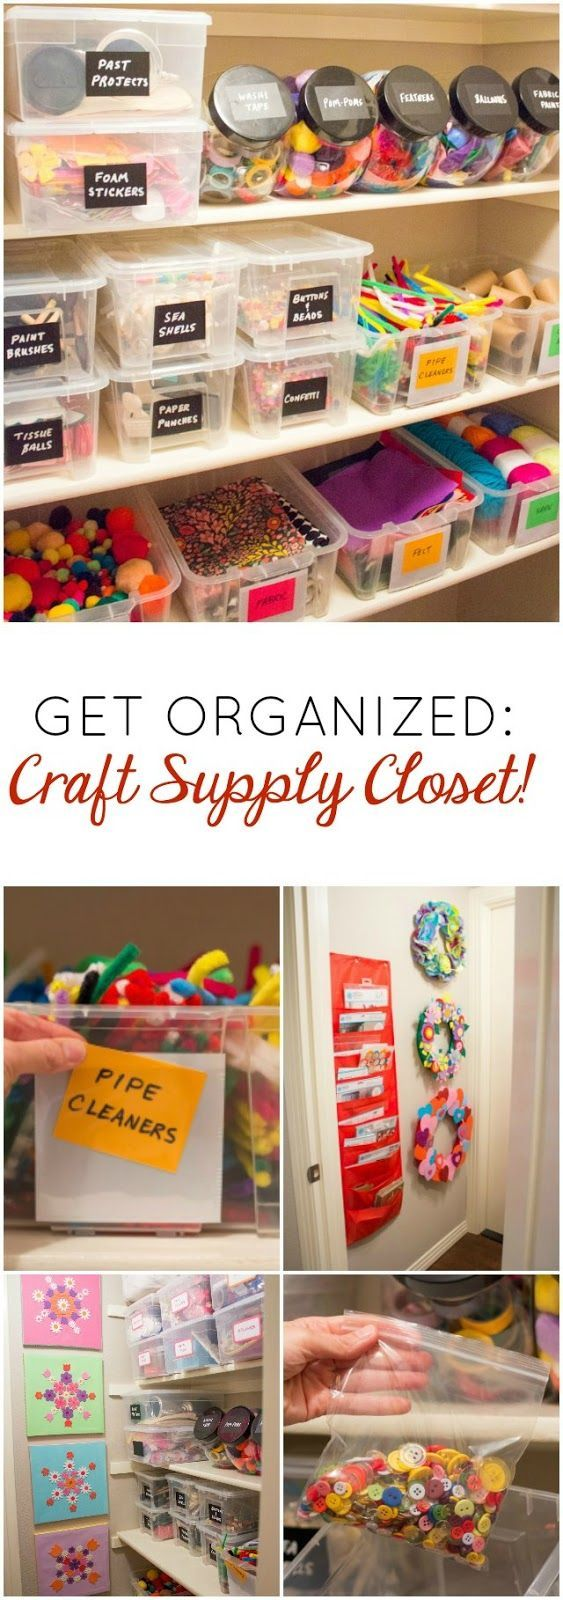 Love This Organized Craft Supply Closet!